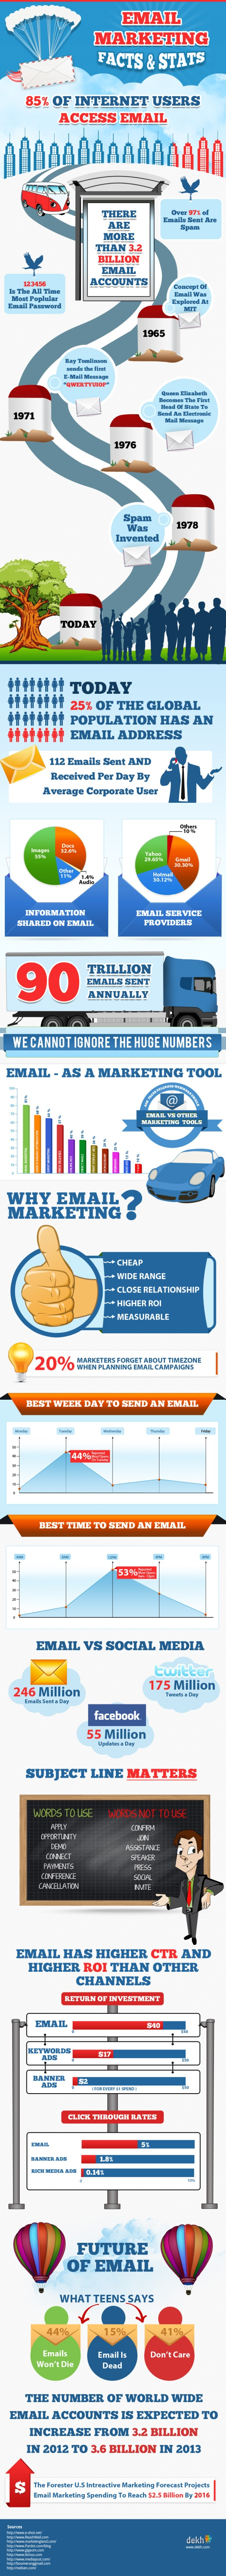 4. Email marketing facts 2013 and beyond